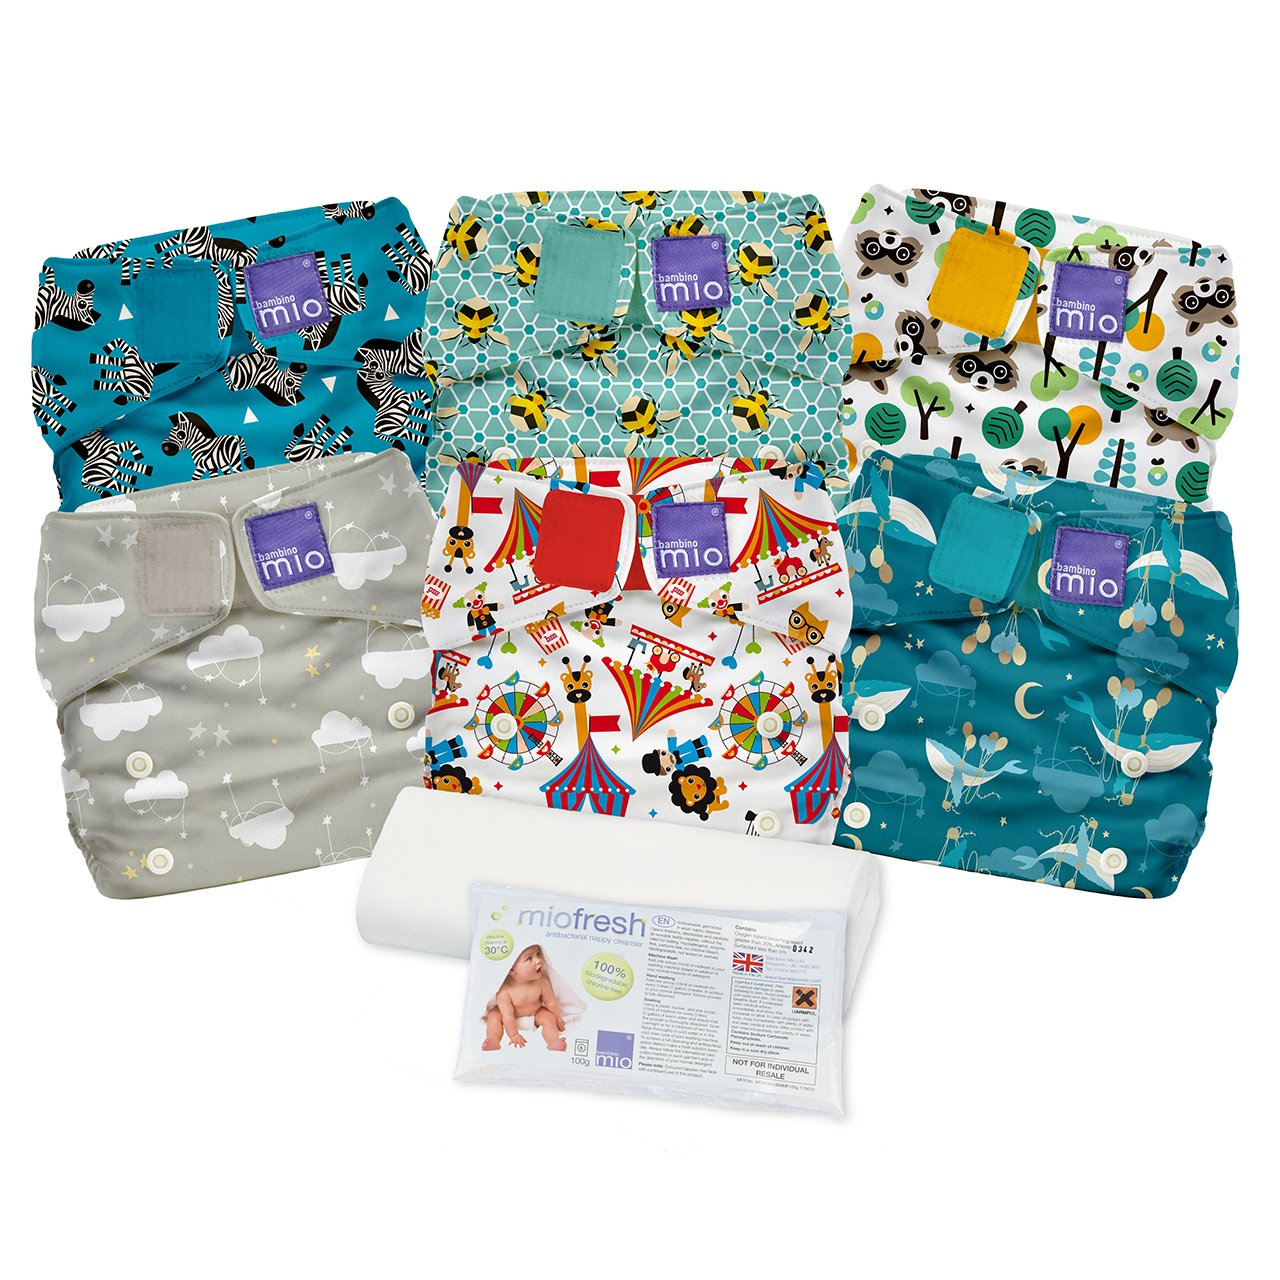 6 X Bambino Miosolo All In One Unisex Reusable Cloth Nappies Bundle Used Nappies